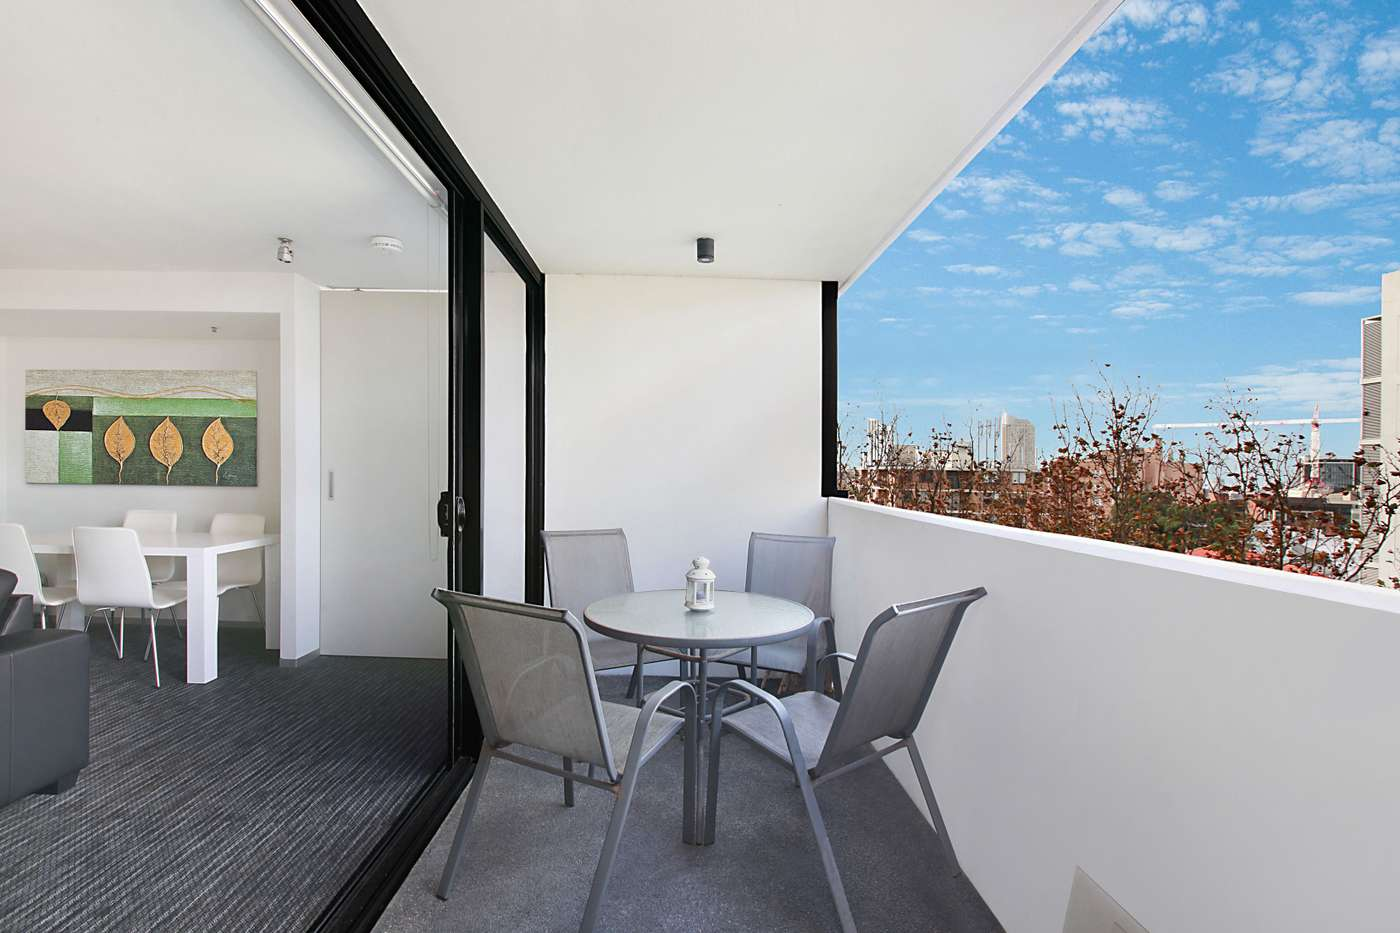 Main view of Homely apartment listing, 610/425 Bourke Street, Surry Hills, NSW 2010